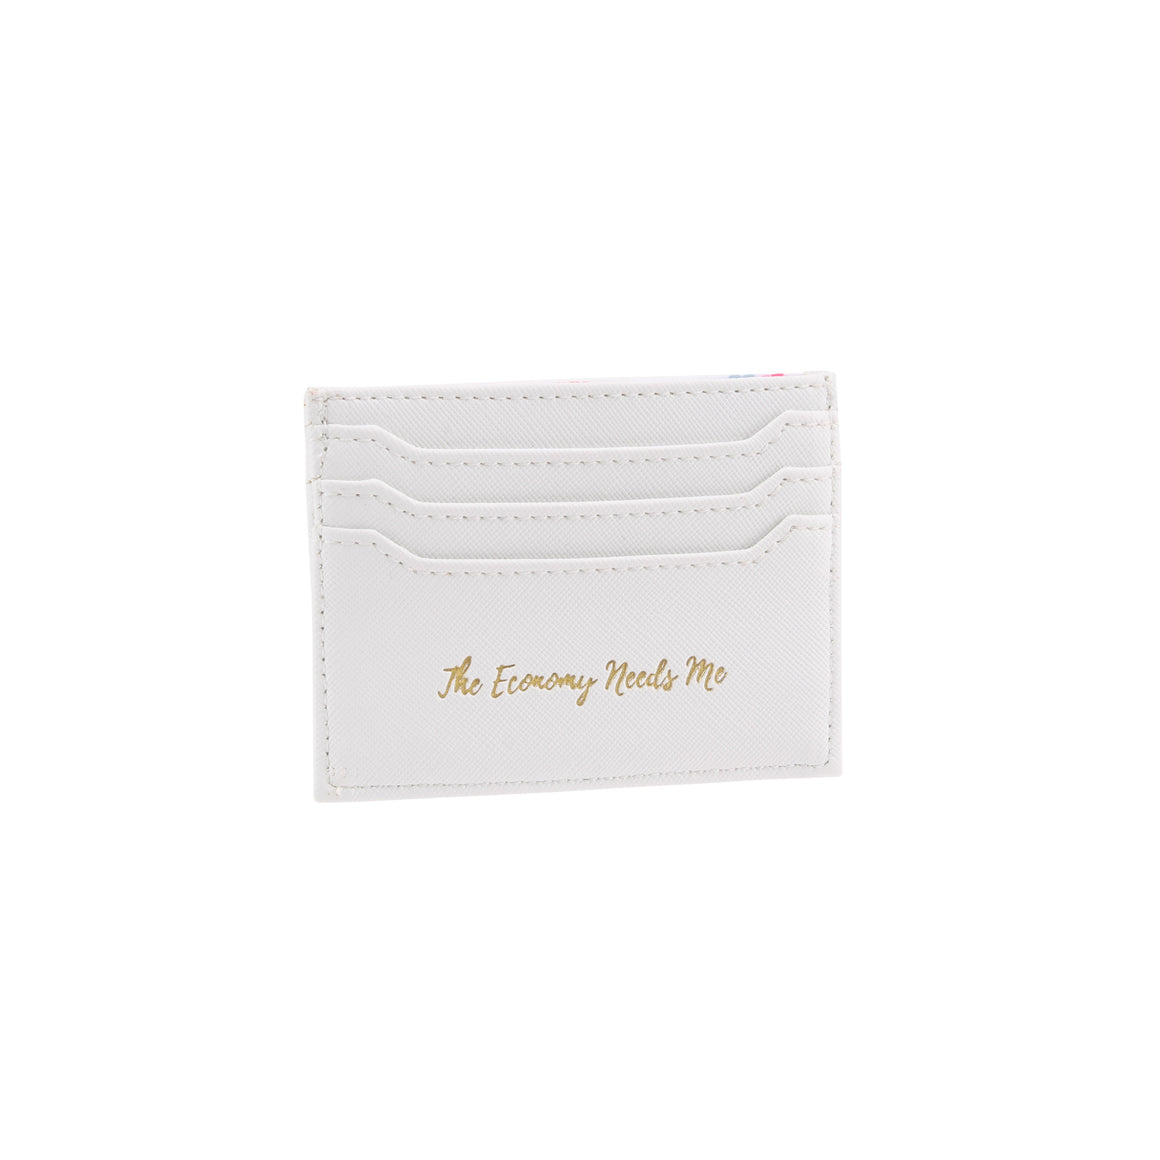 Willow & Rose 'The Economy Needs Me' White Card Holder